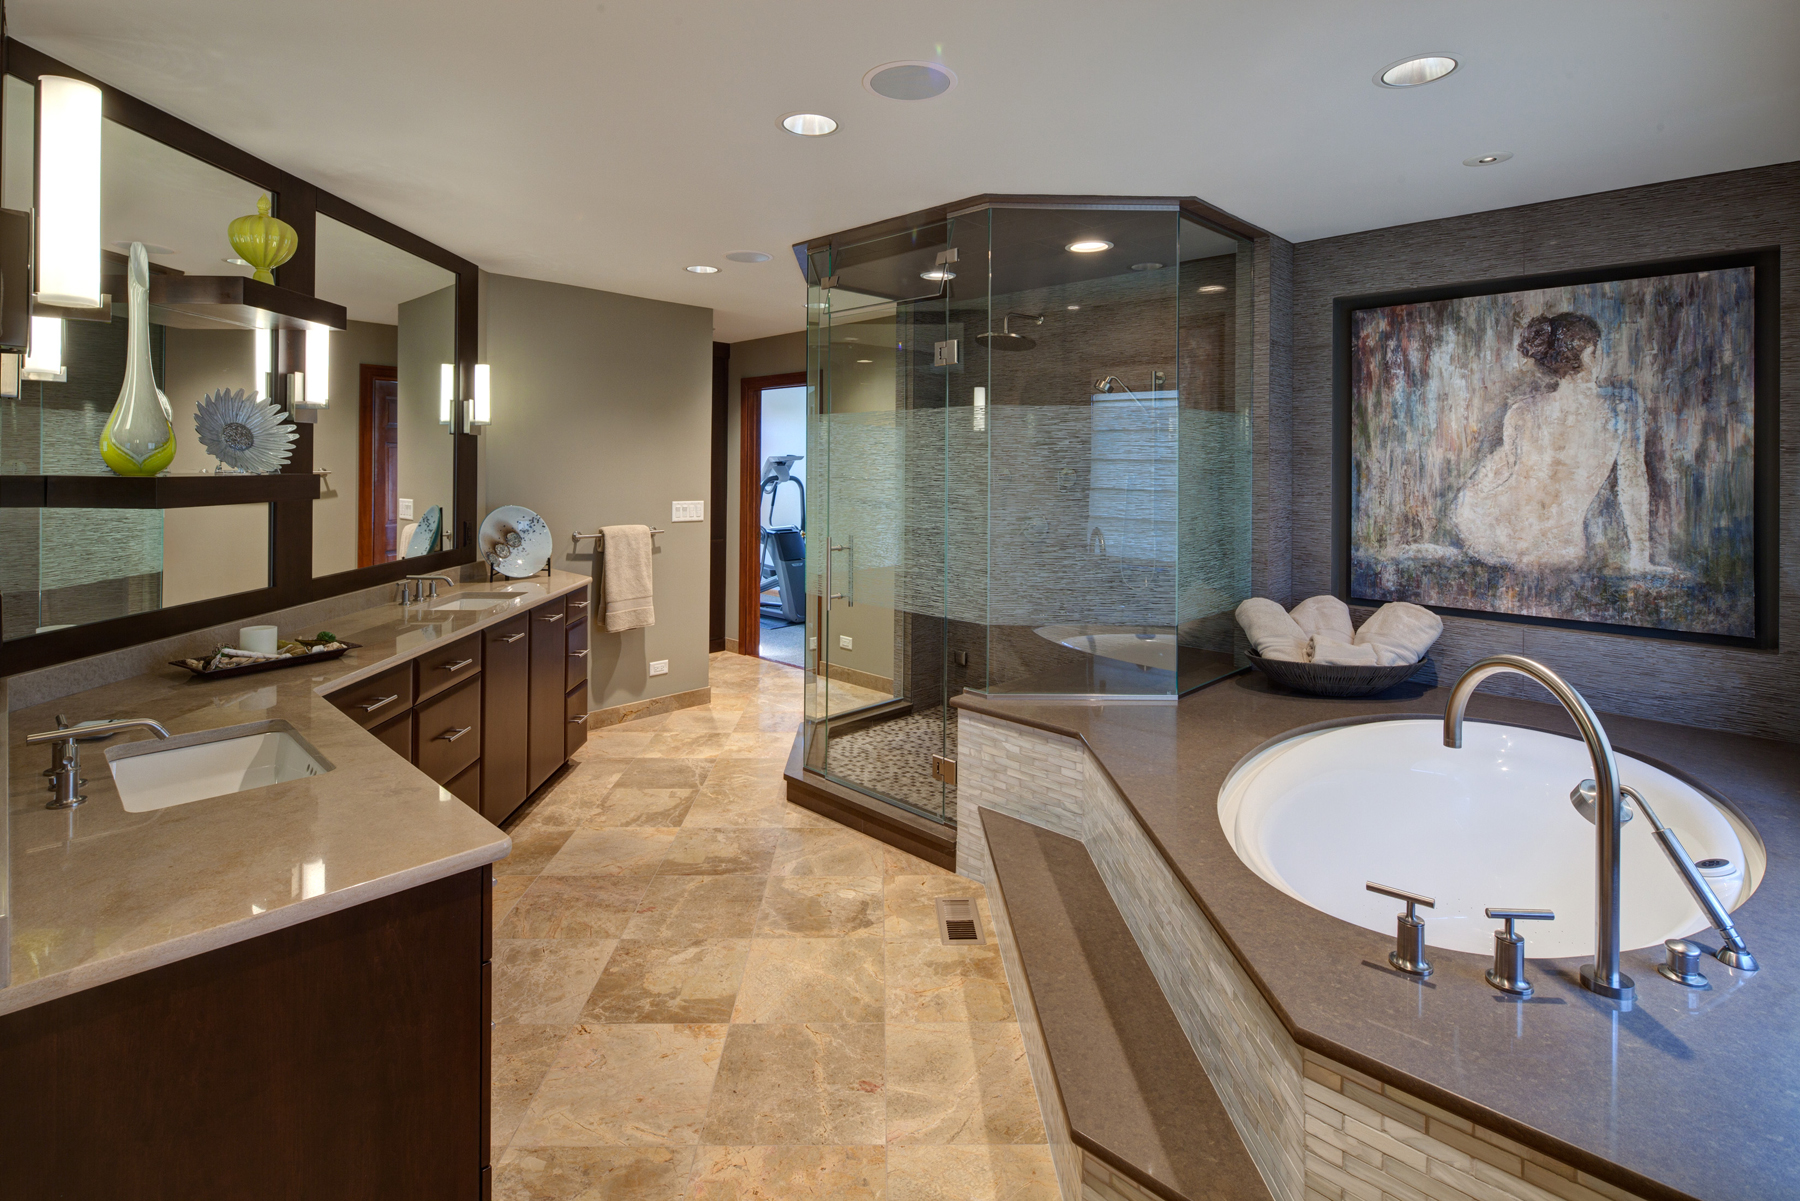 This lavish oasis of a bathroom stands a large etched glass shower at center, with recessed bath niche at right and lengthy vanity at left. Mirrors hold both custom shelving built into the surface, and a hidden television behind one of the panels. Homeowner's artwork is displayed on niche wall.